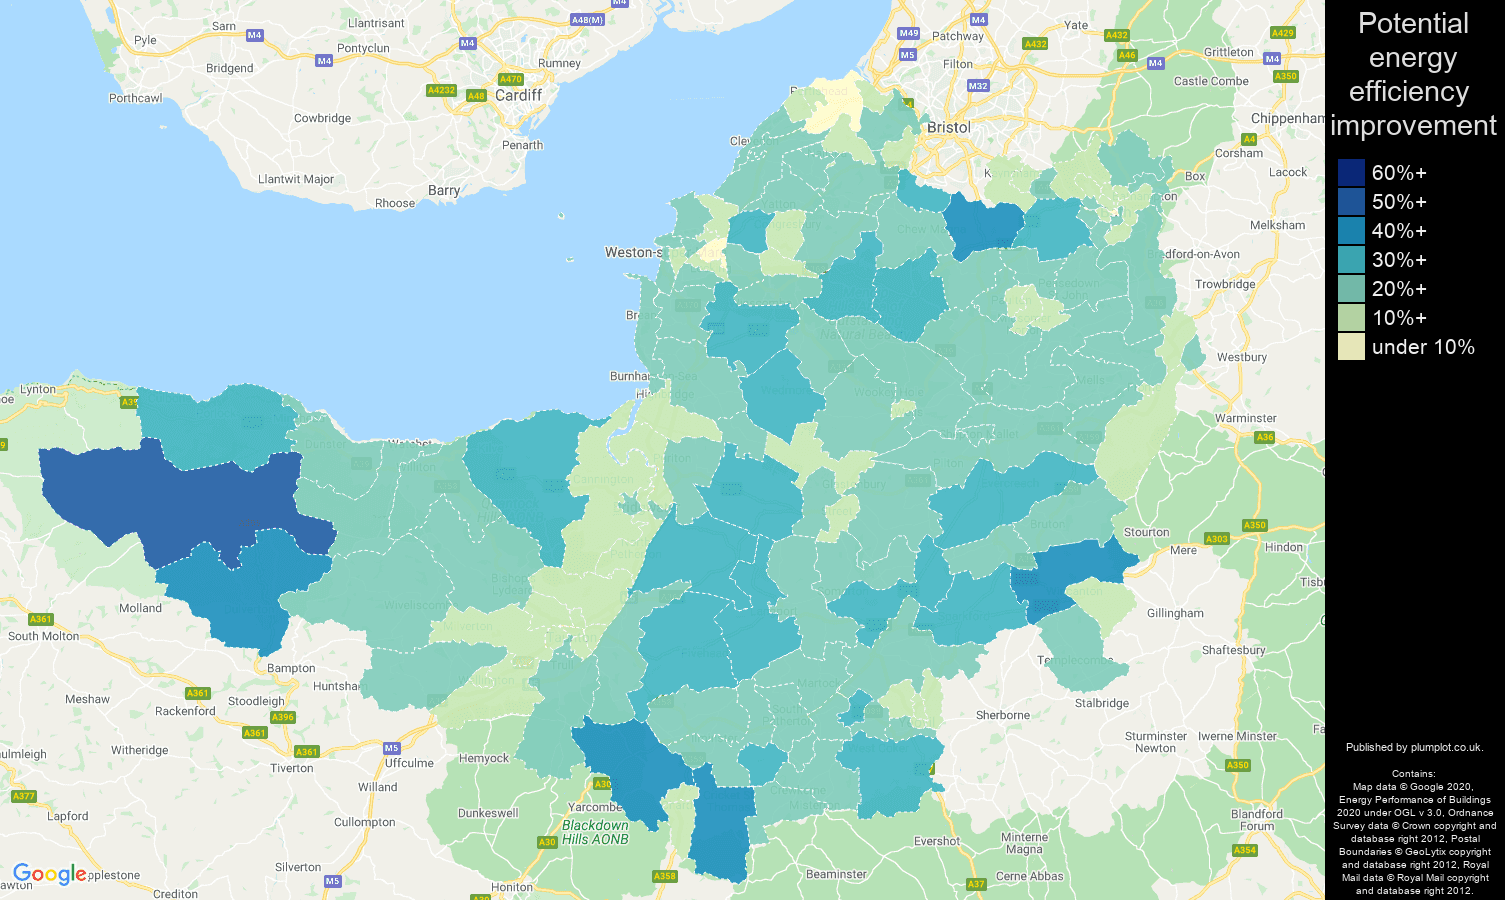 Somerset map of potential energy efficiency improvement of properties